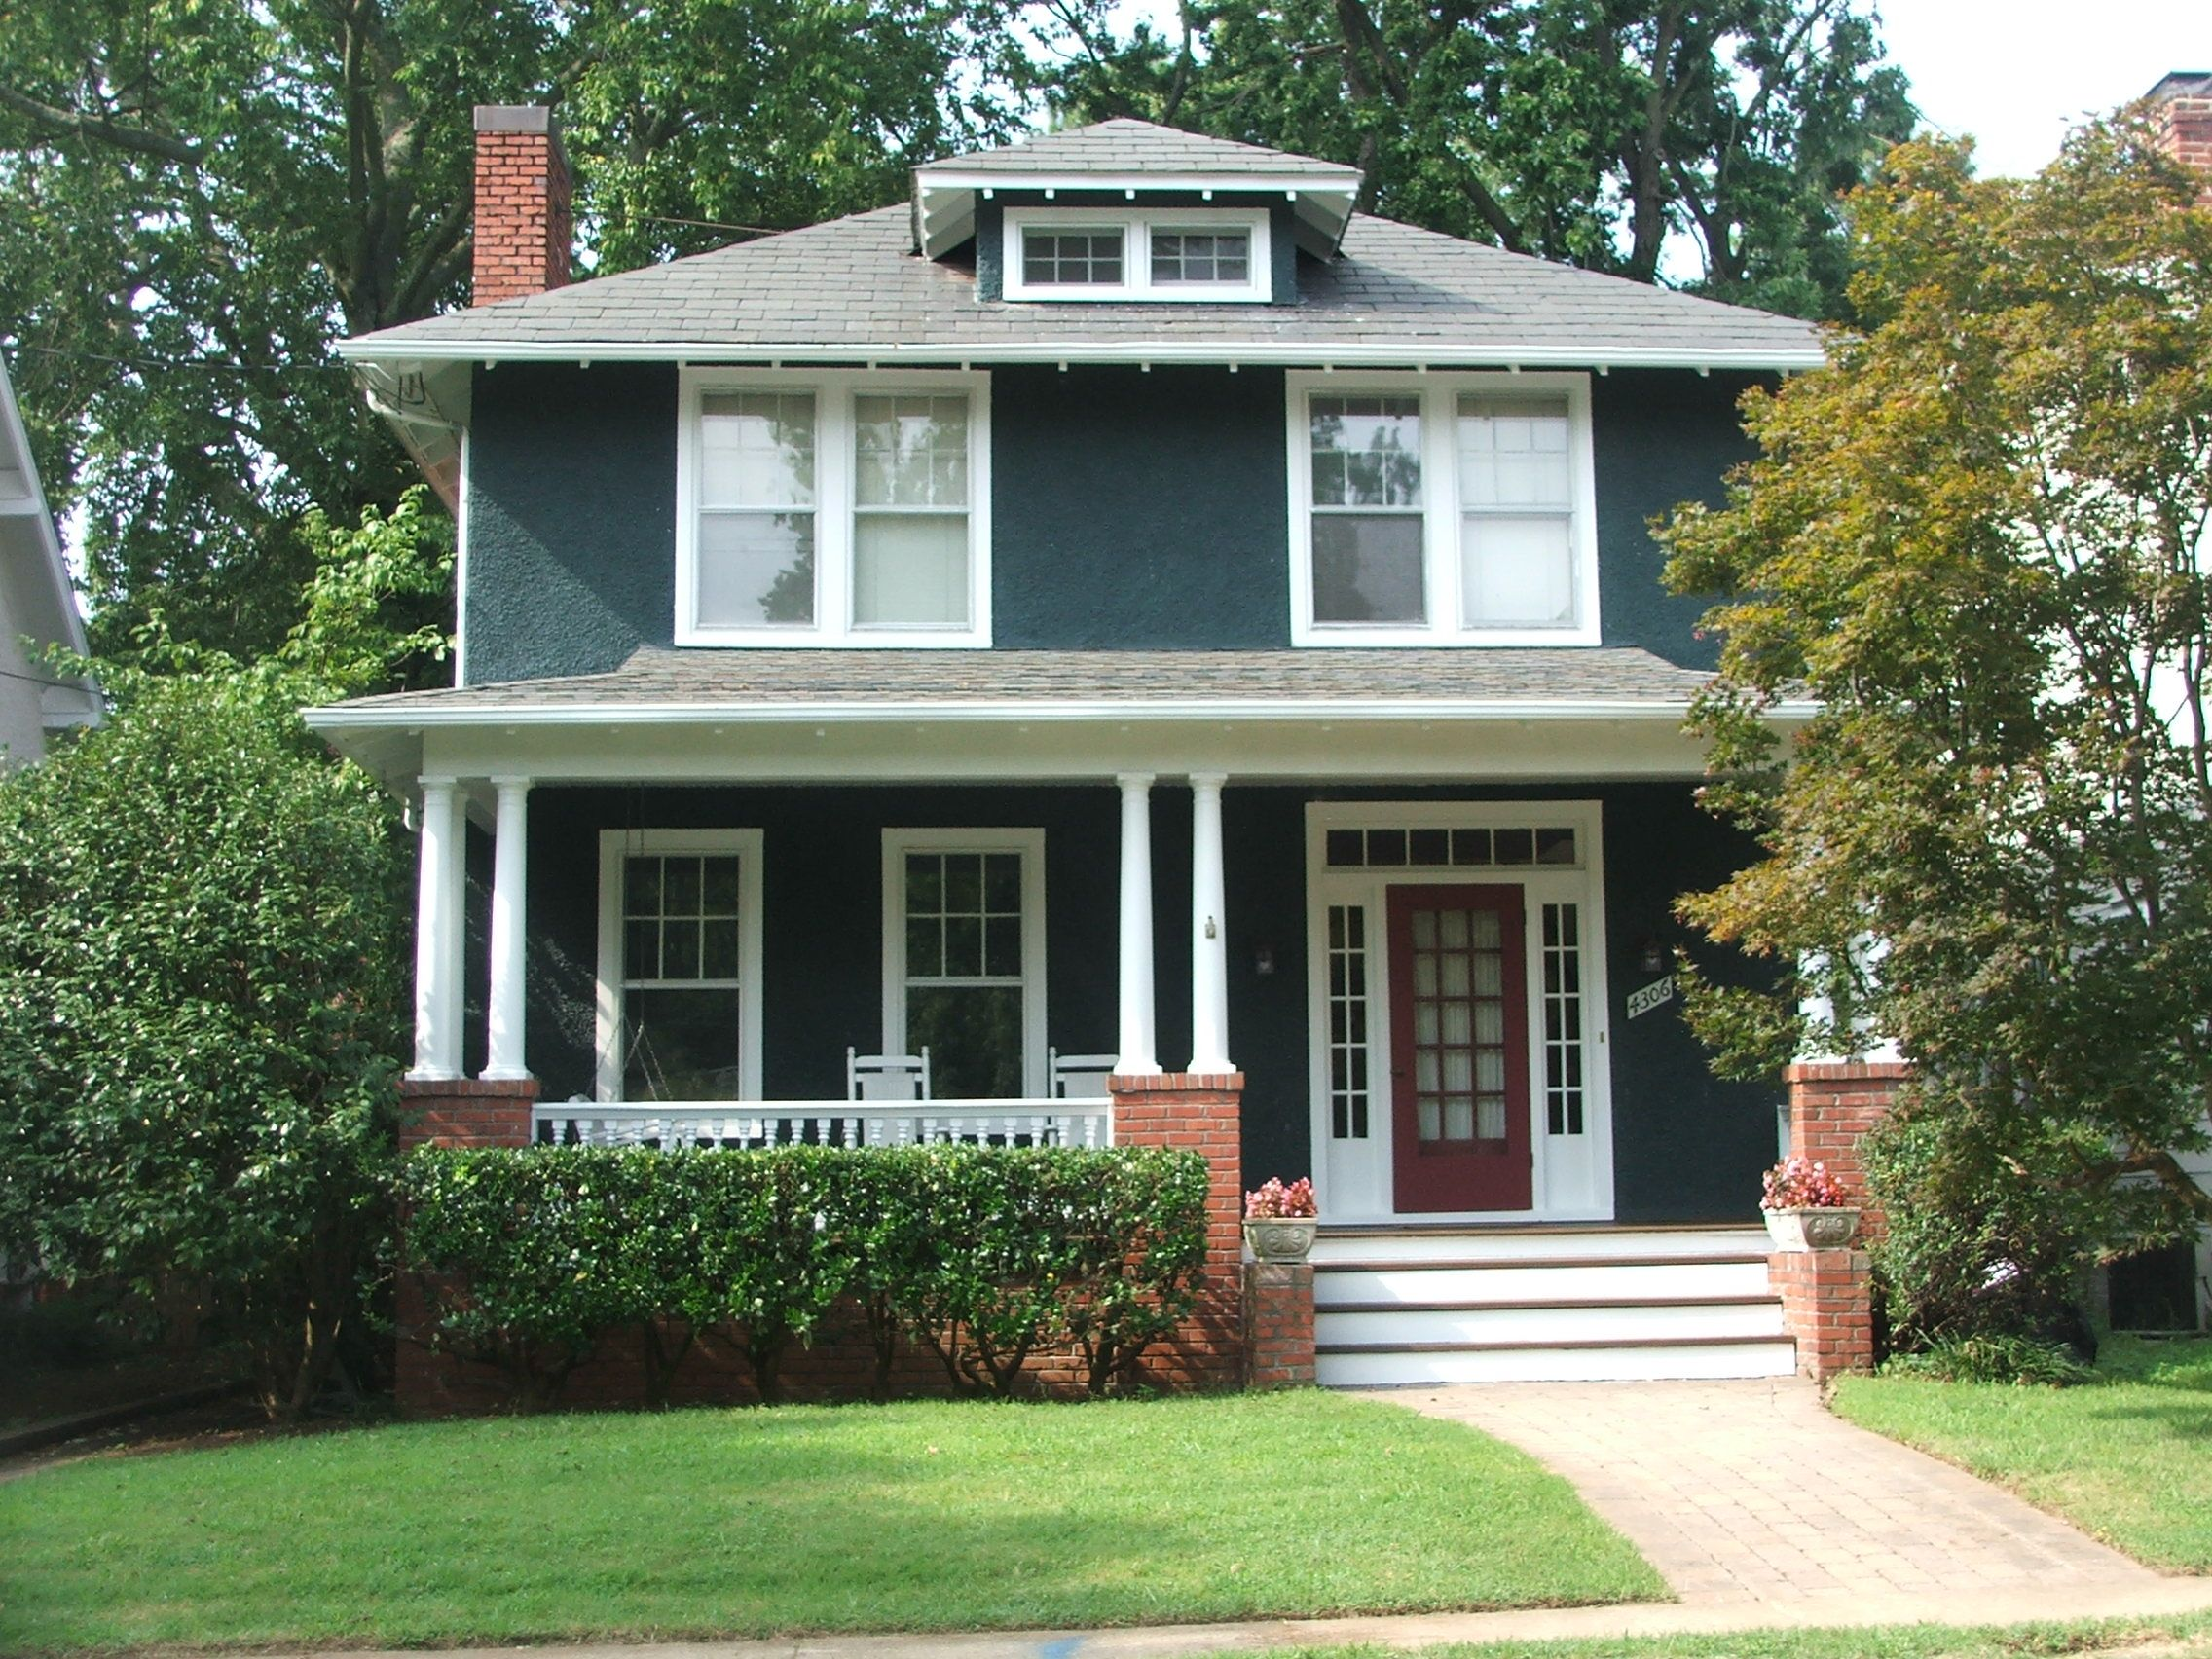 Diy idea for old suitcase american houses front porches and porch - Exterior paints for houses pictures style ...